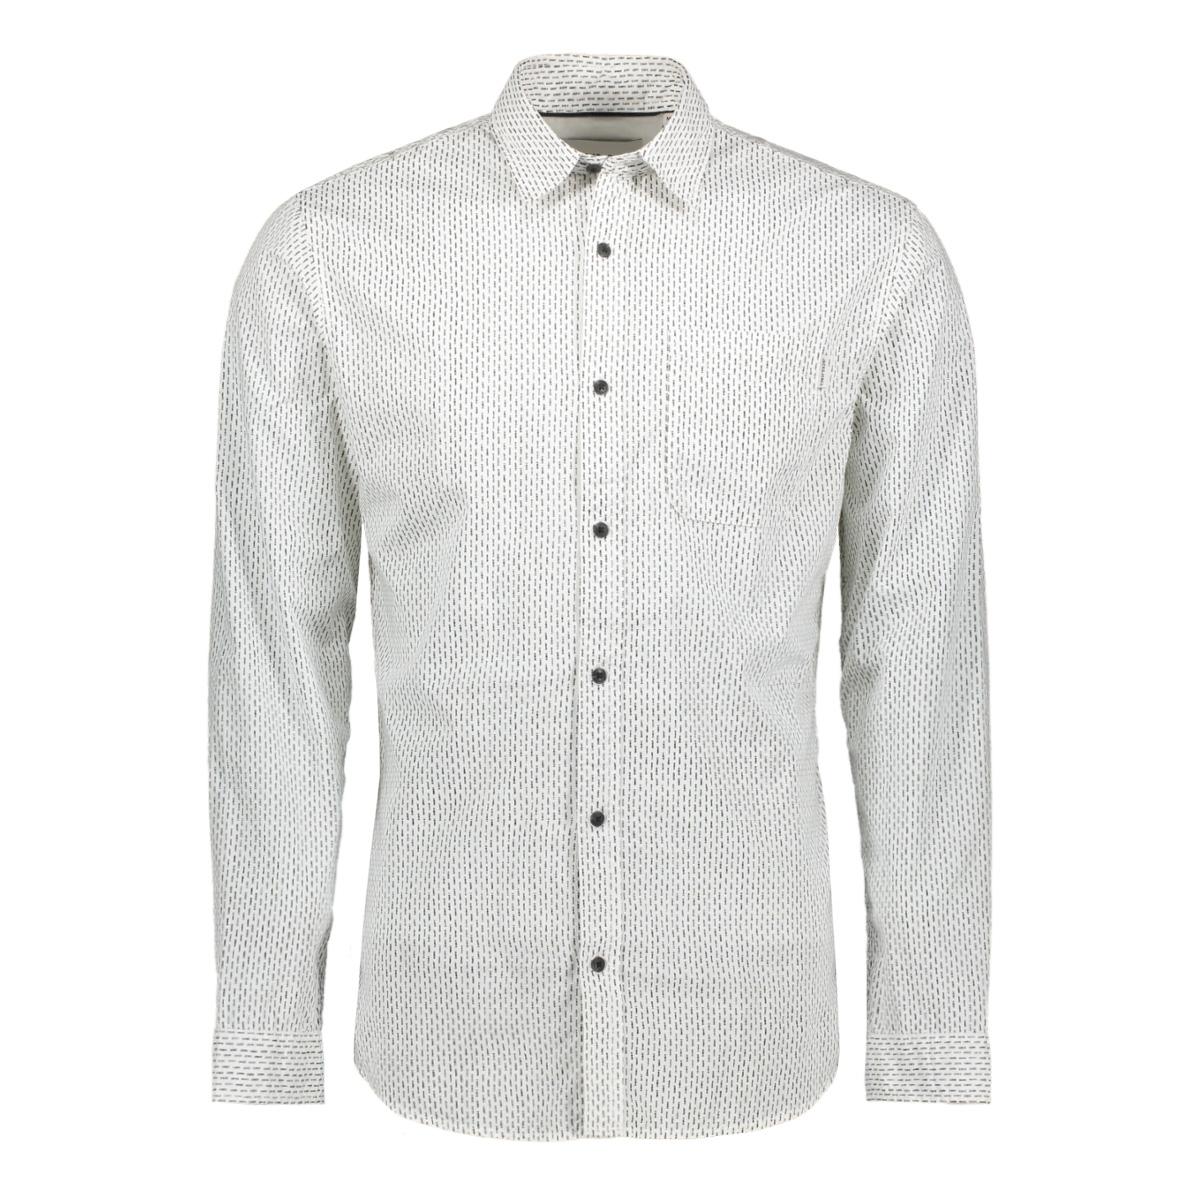 jcogladstone  shirt ls one pocket 12161661 jack & jones overhemd white/slim bla